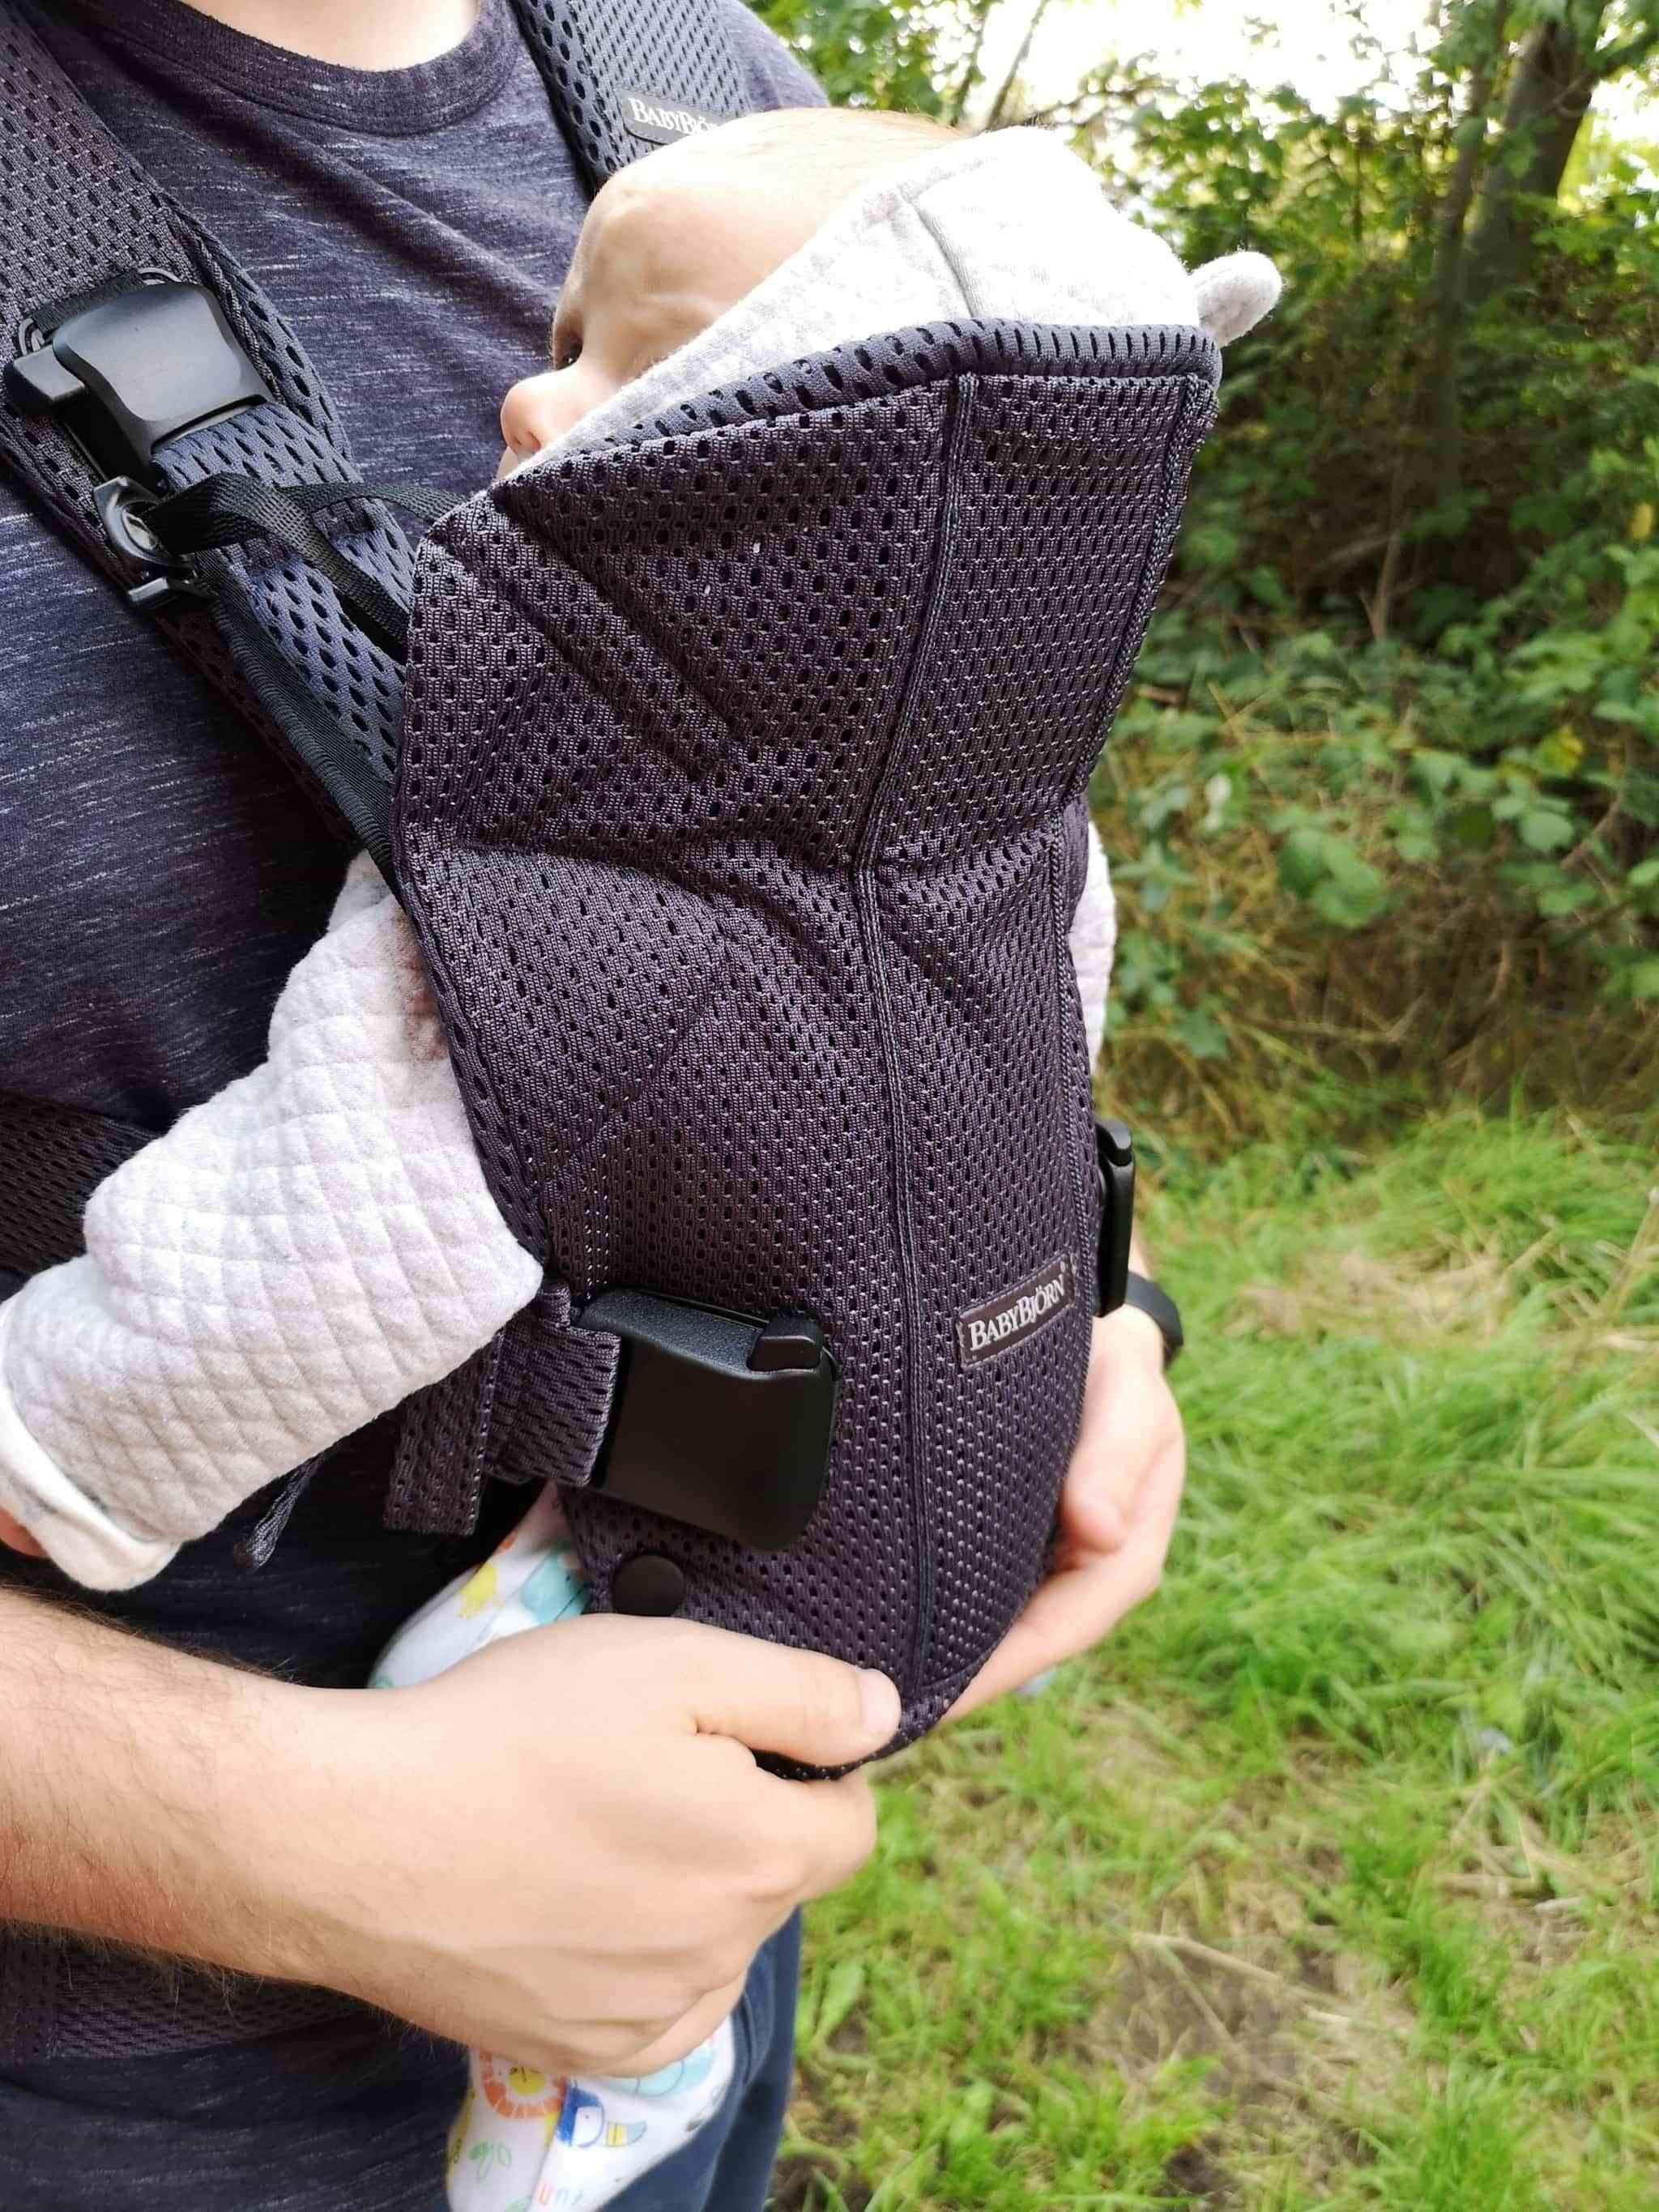 Falling In Love With The Babybjorn Baby Carrier One Air Soph Obsessed Baby Bjorn Carrier Baby Carrier Baby Bjorn